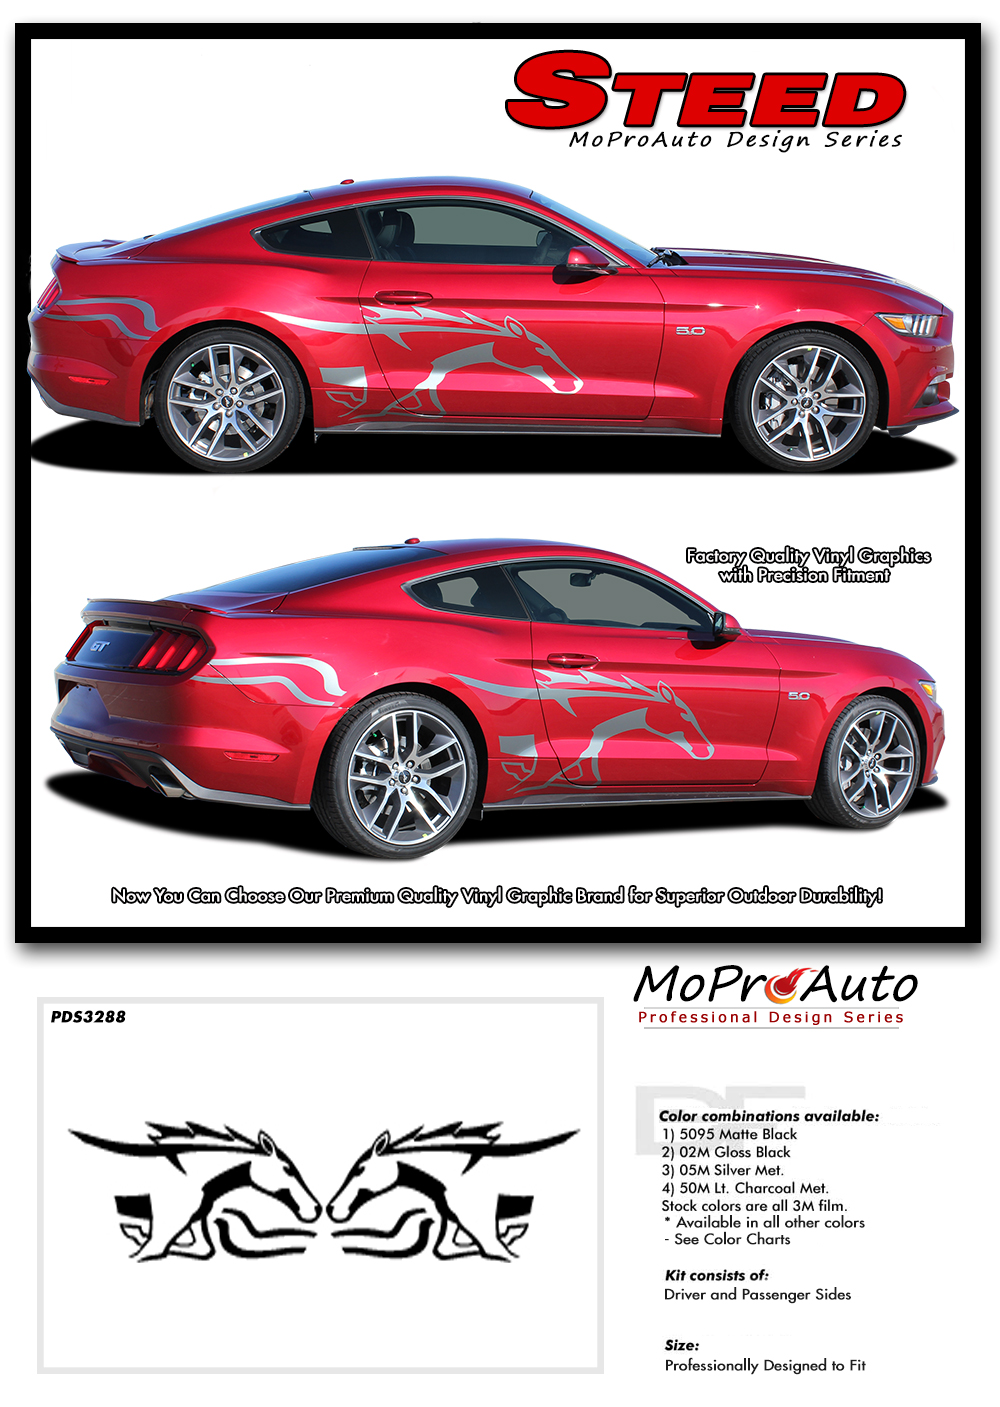 2015 2016 2017 steed ford mustang moproauto pro design series vinyl graphics and decals kit